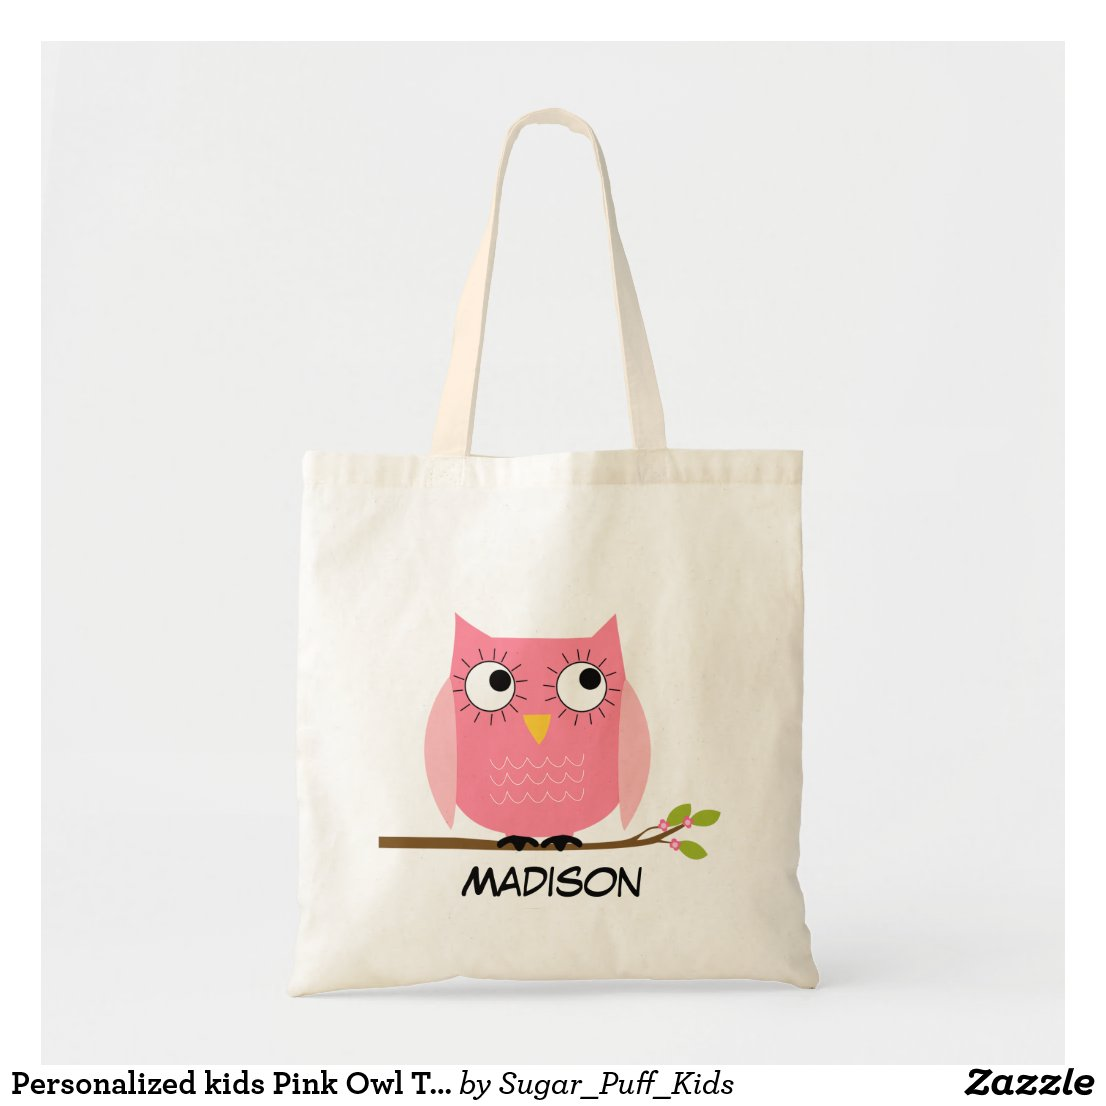 Personalised kids Pink Owl Tote Bag